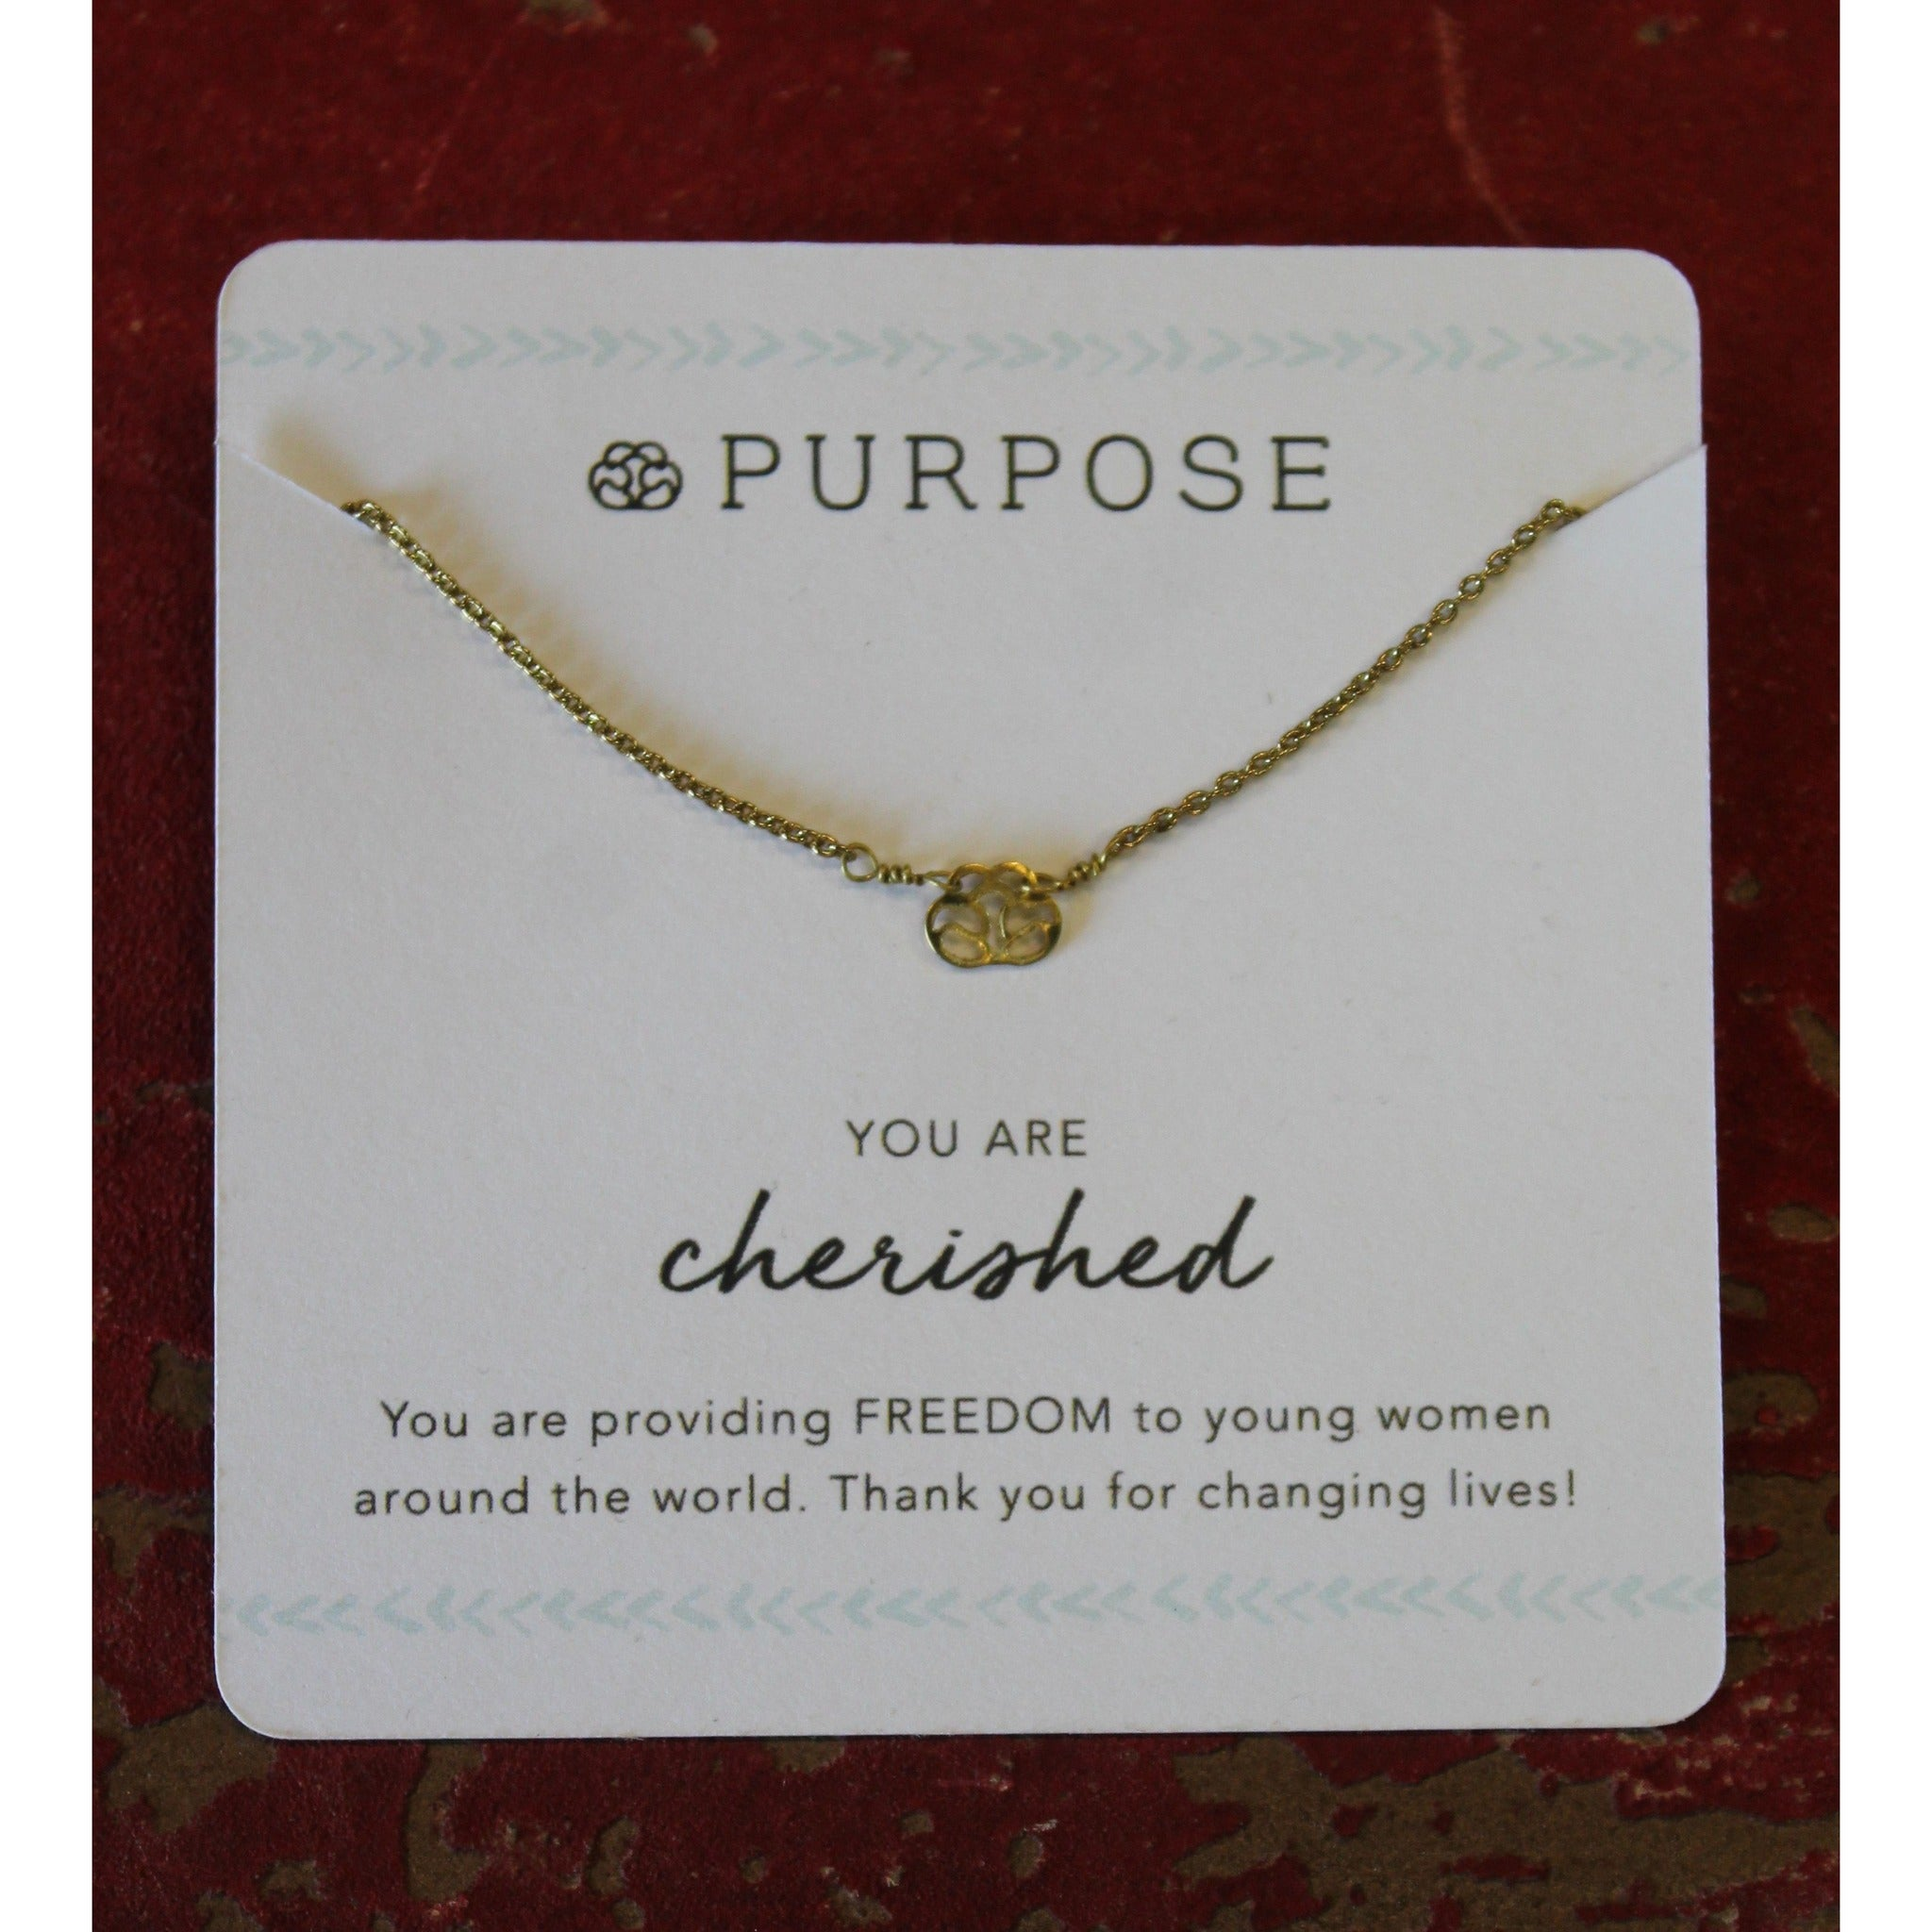 PURPOSE JEWELRY Handcrafted Dainty Signature Necklace